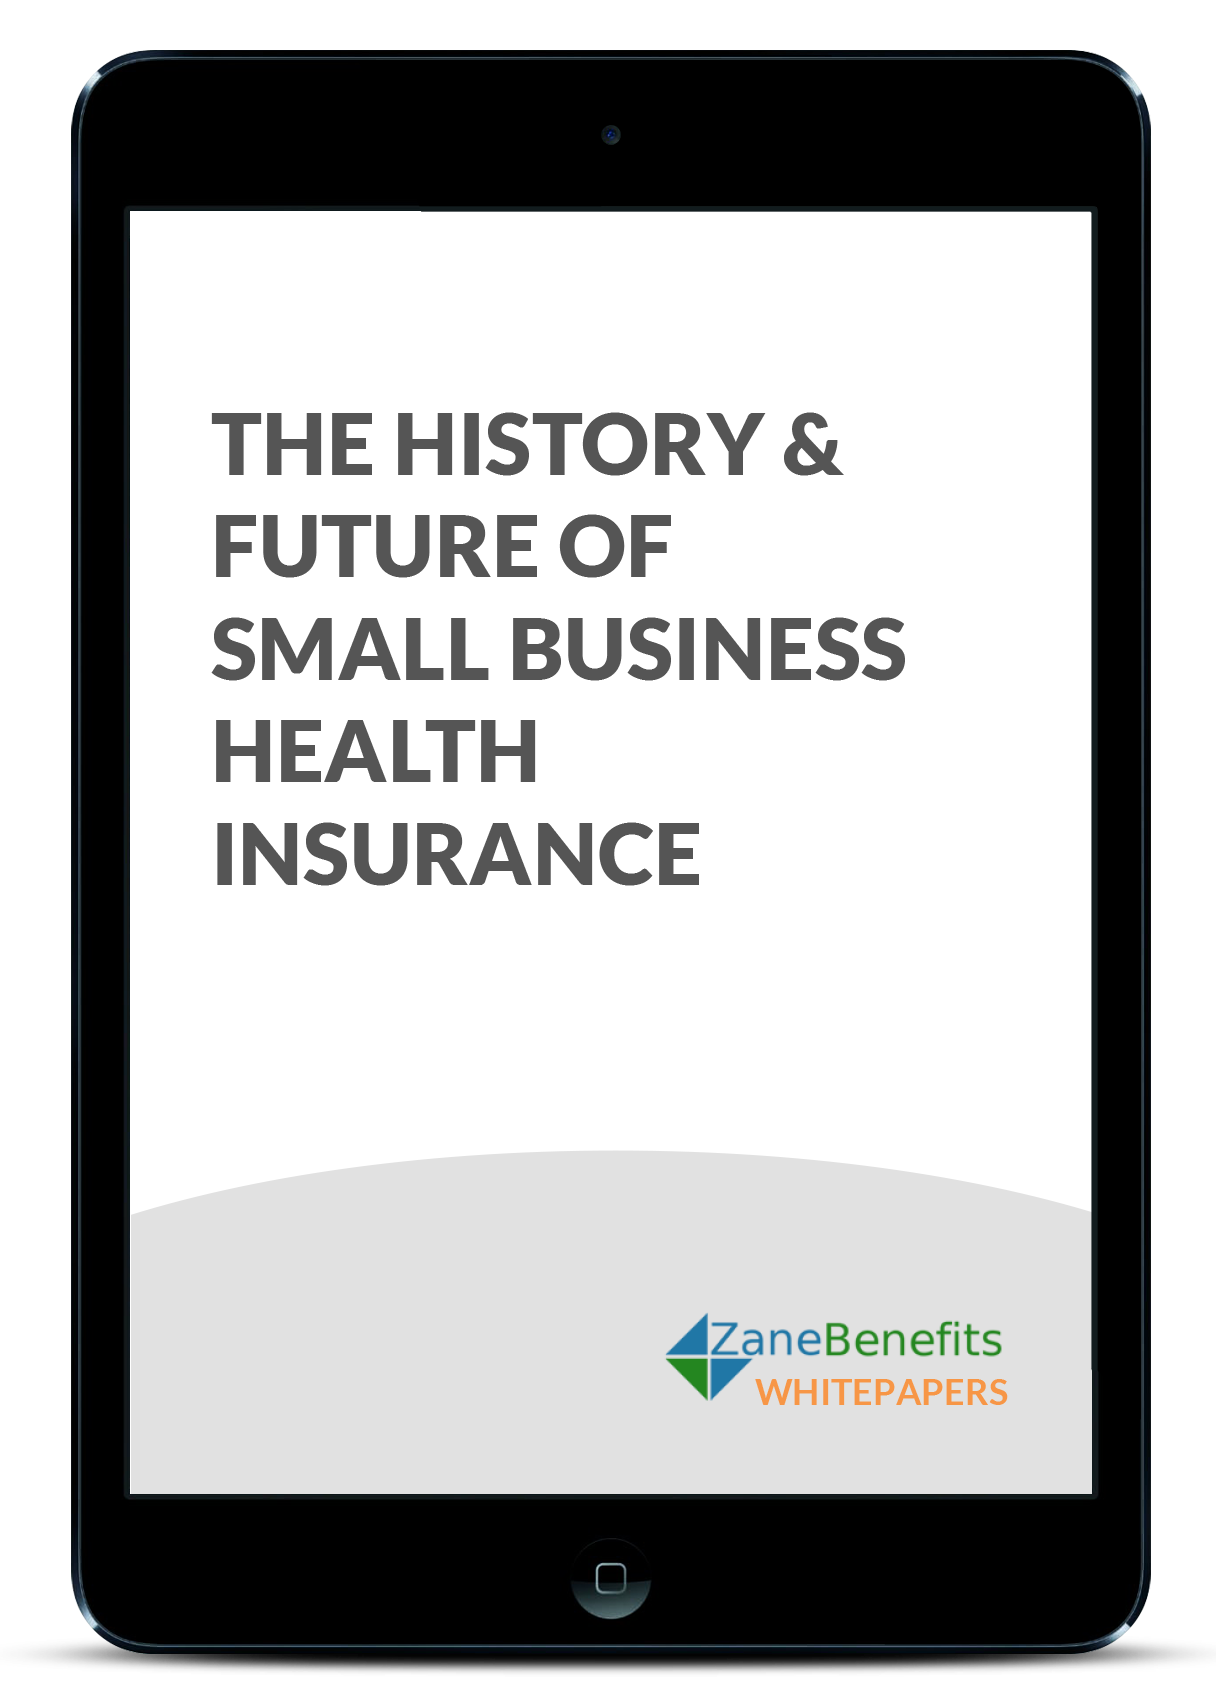 The History & Future of Small Business Health Insurance